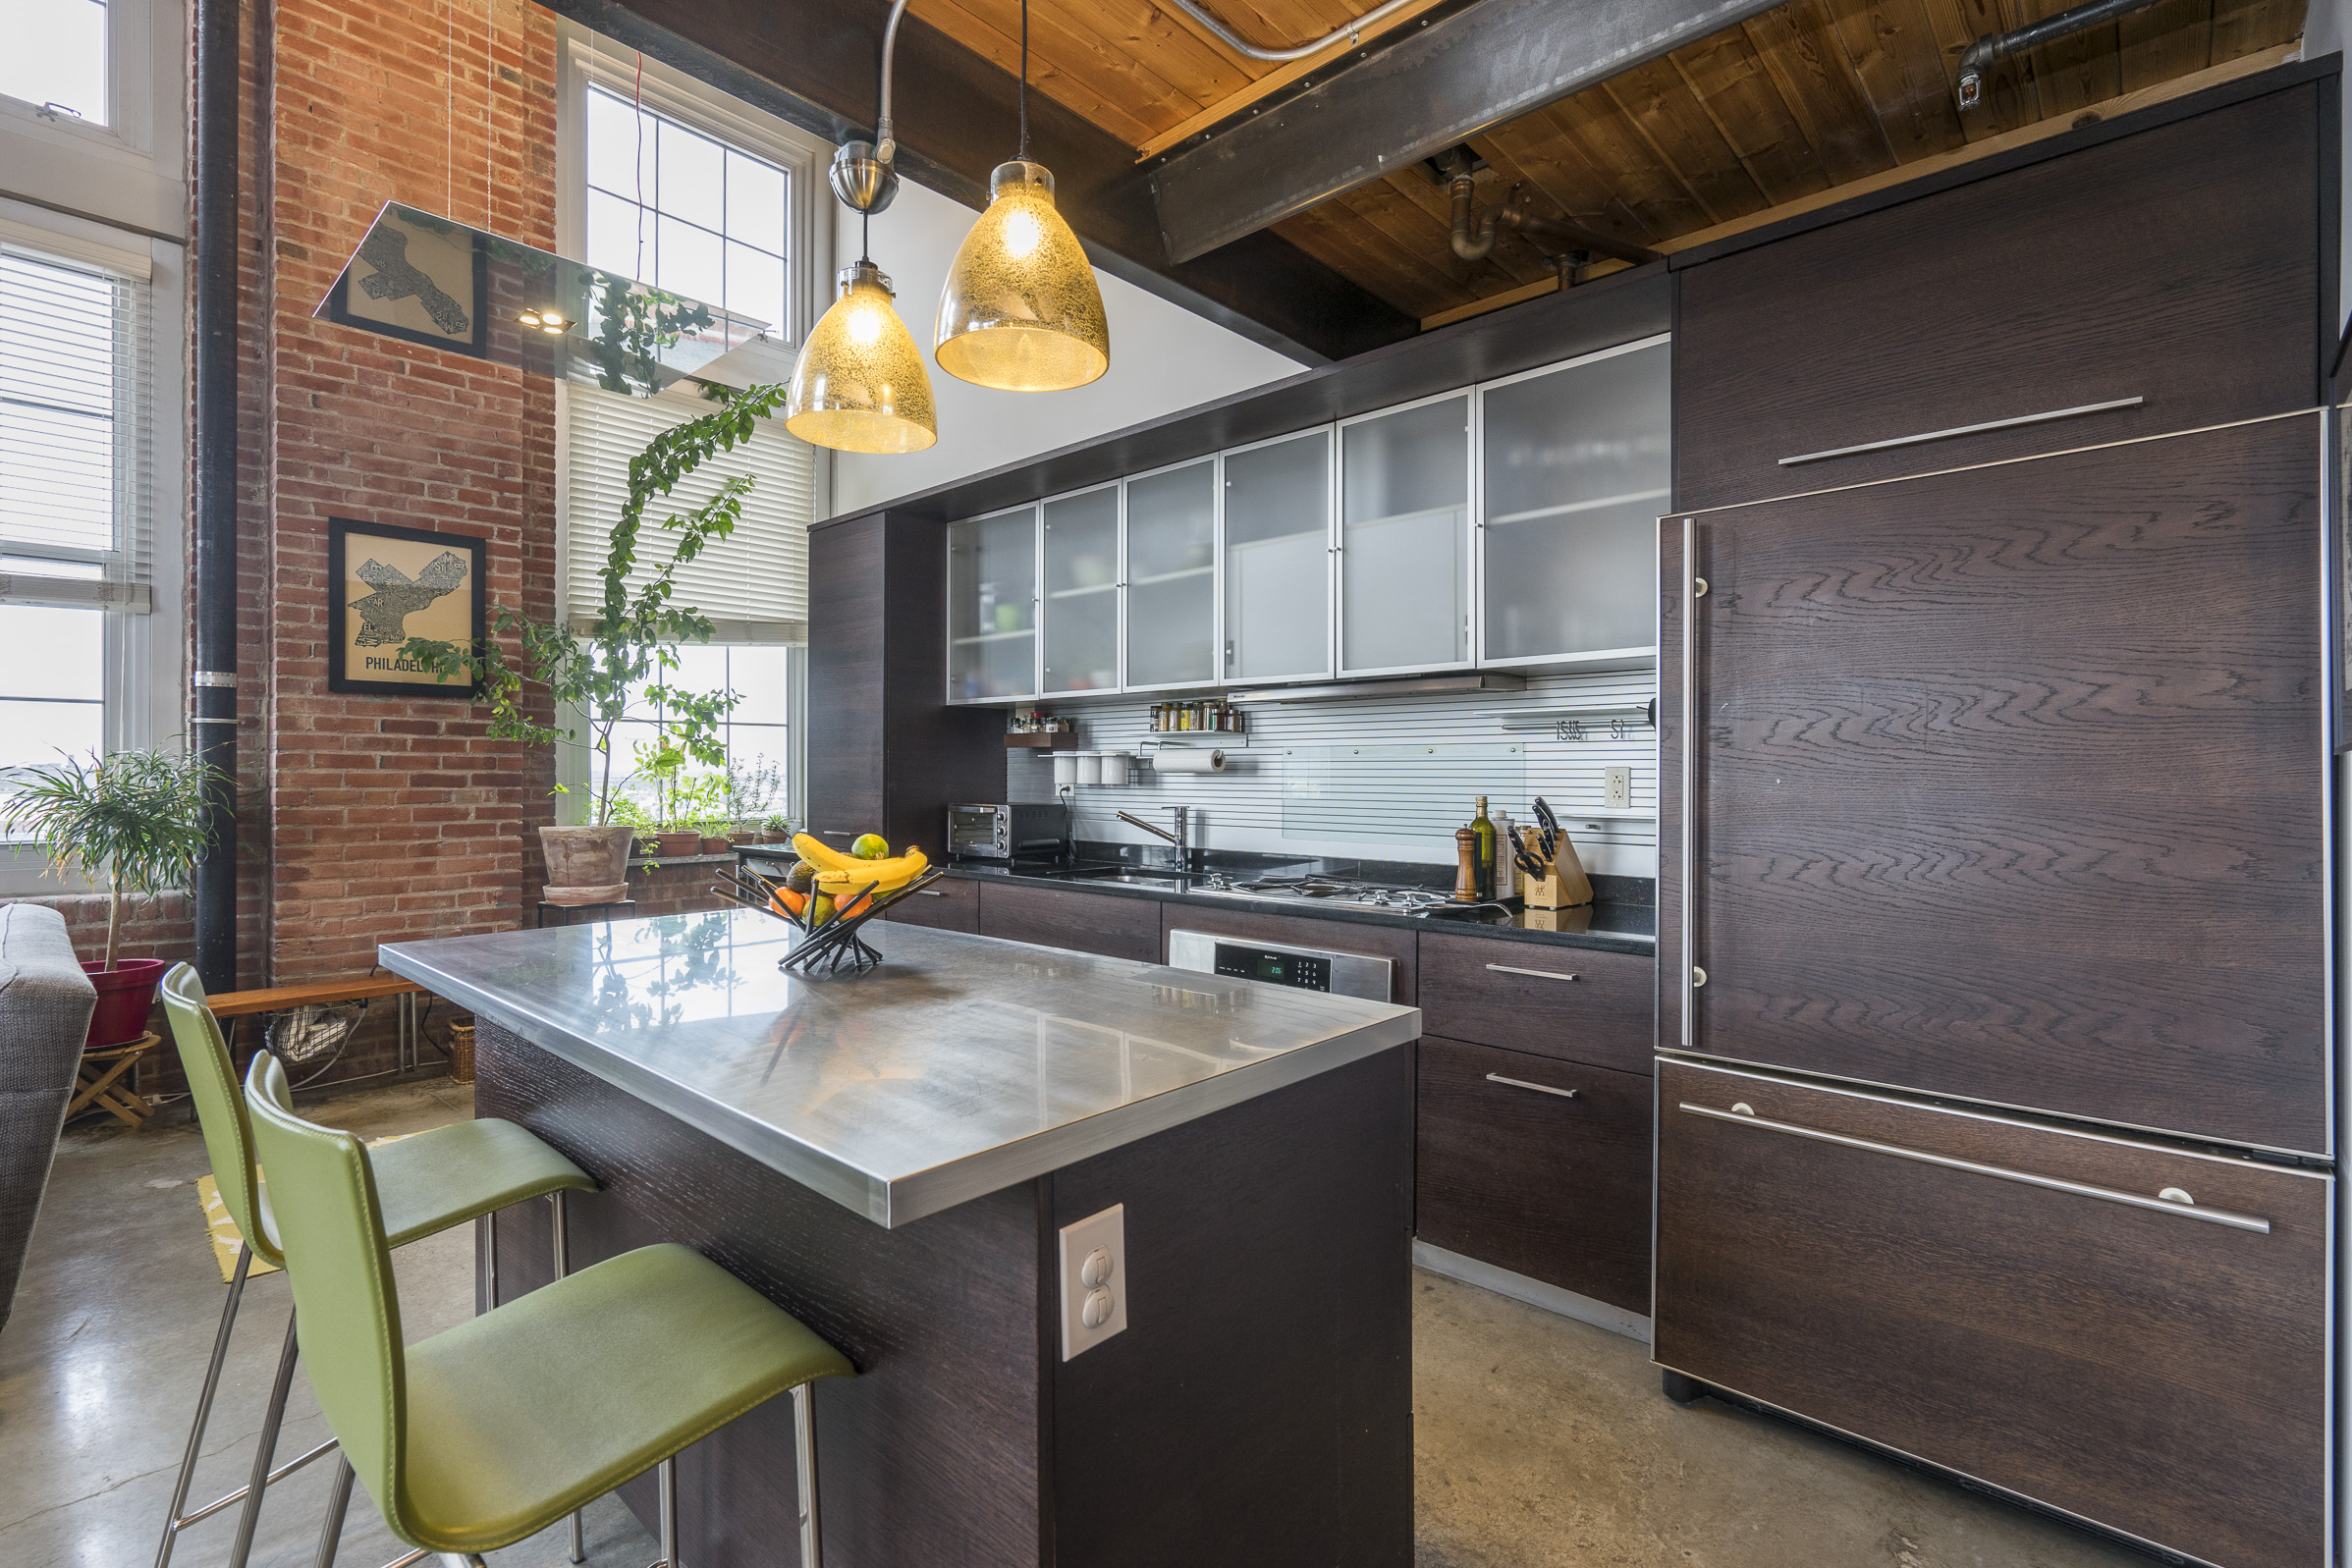 Property Of The Week Design Inspired Queen Village Loft 1101 Washington Ave 706 Philadelphia Pa 19147 Alcove Media Real Estate Photography